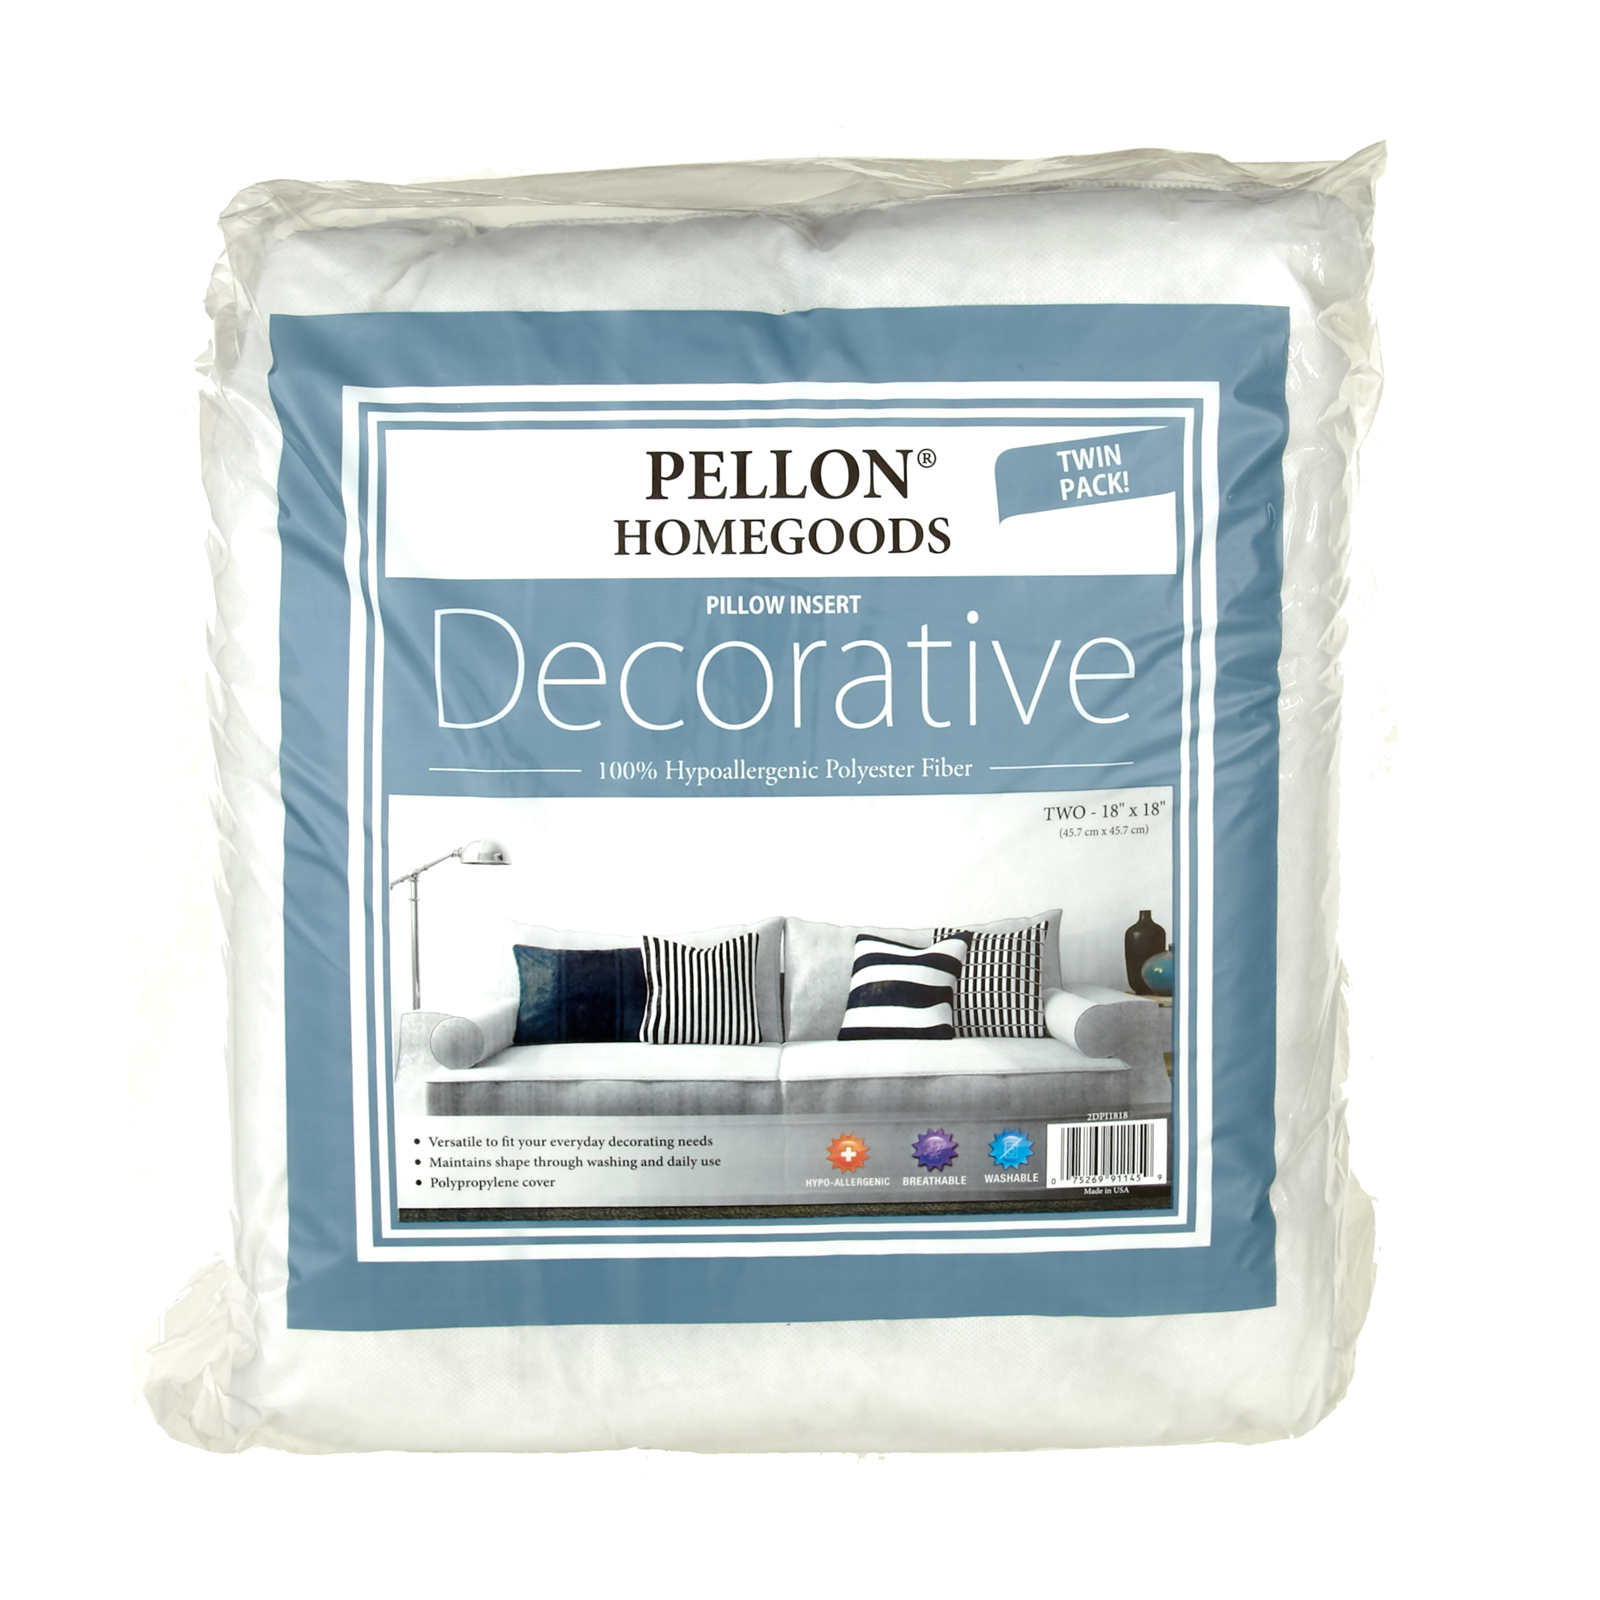 Pellon HomeGoods Twin Pack Decorative Pillow Insert 18x18 by PCP in USA